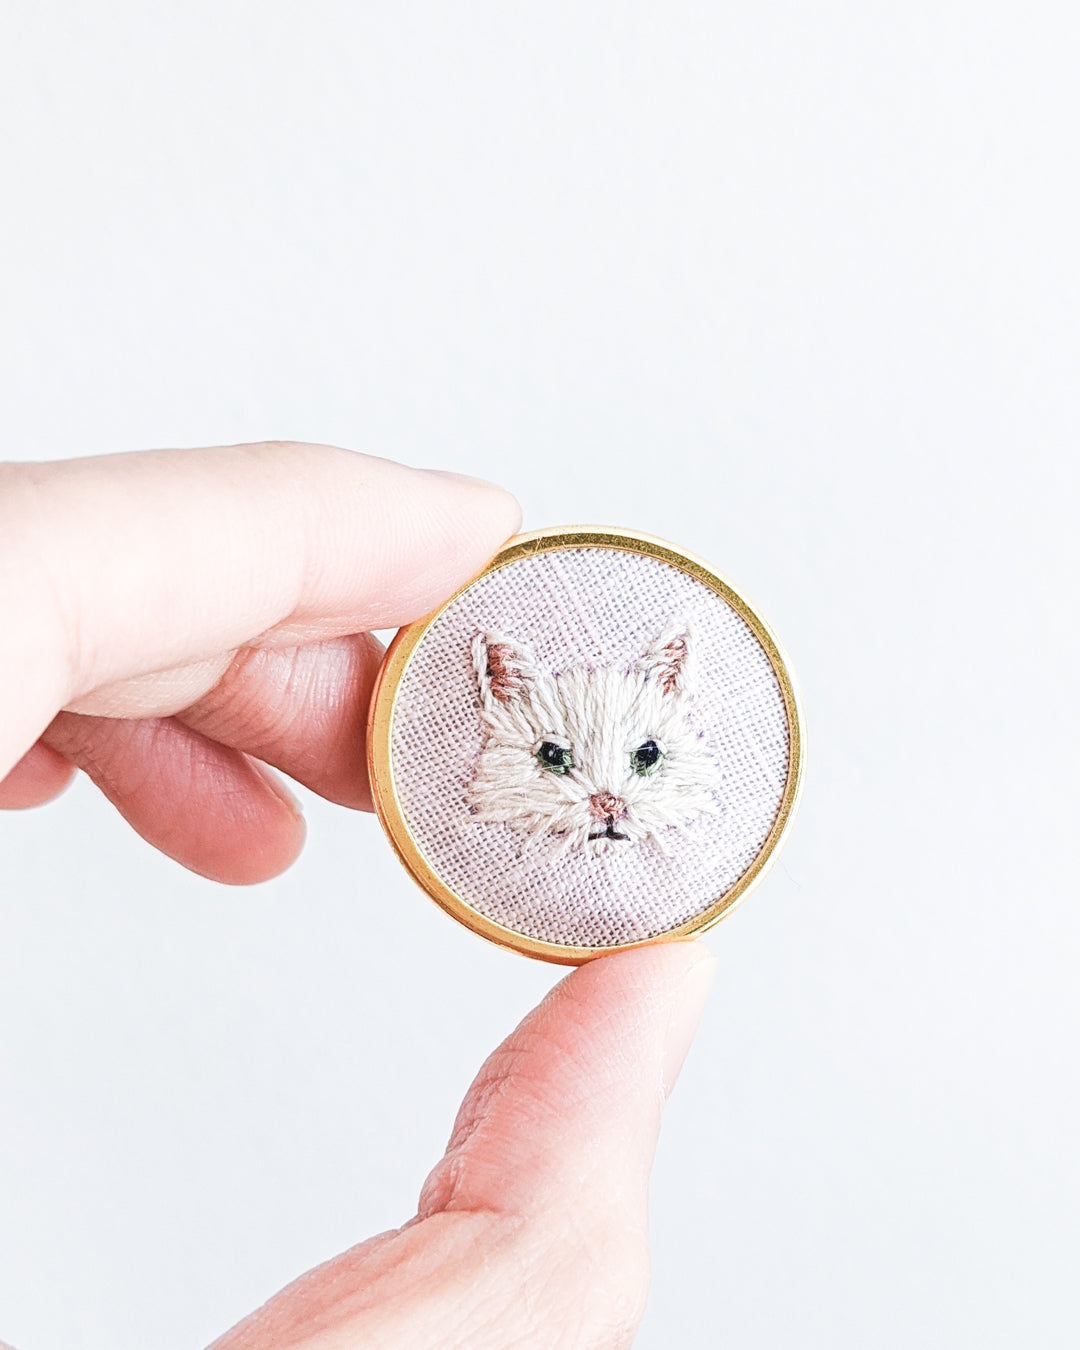 Embroidered Cat Pin - White Maine Coon, long-haired